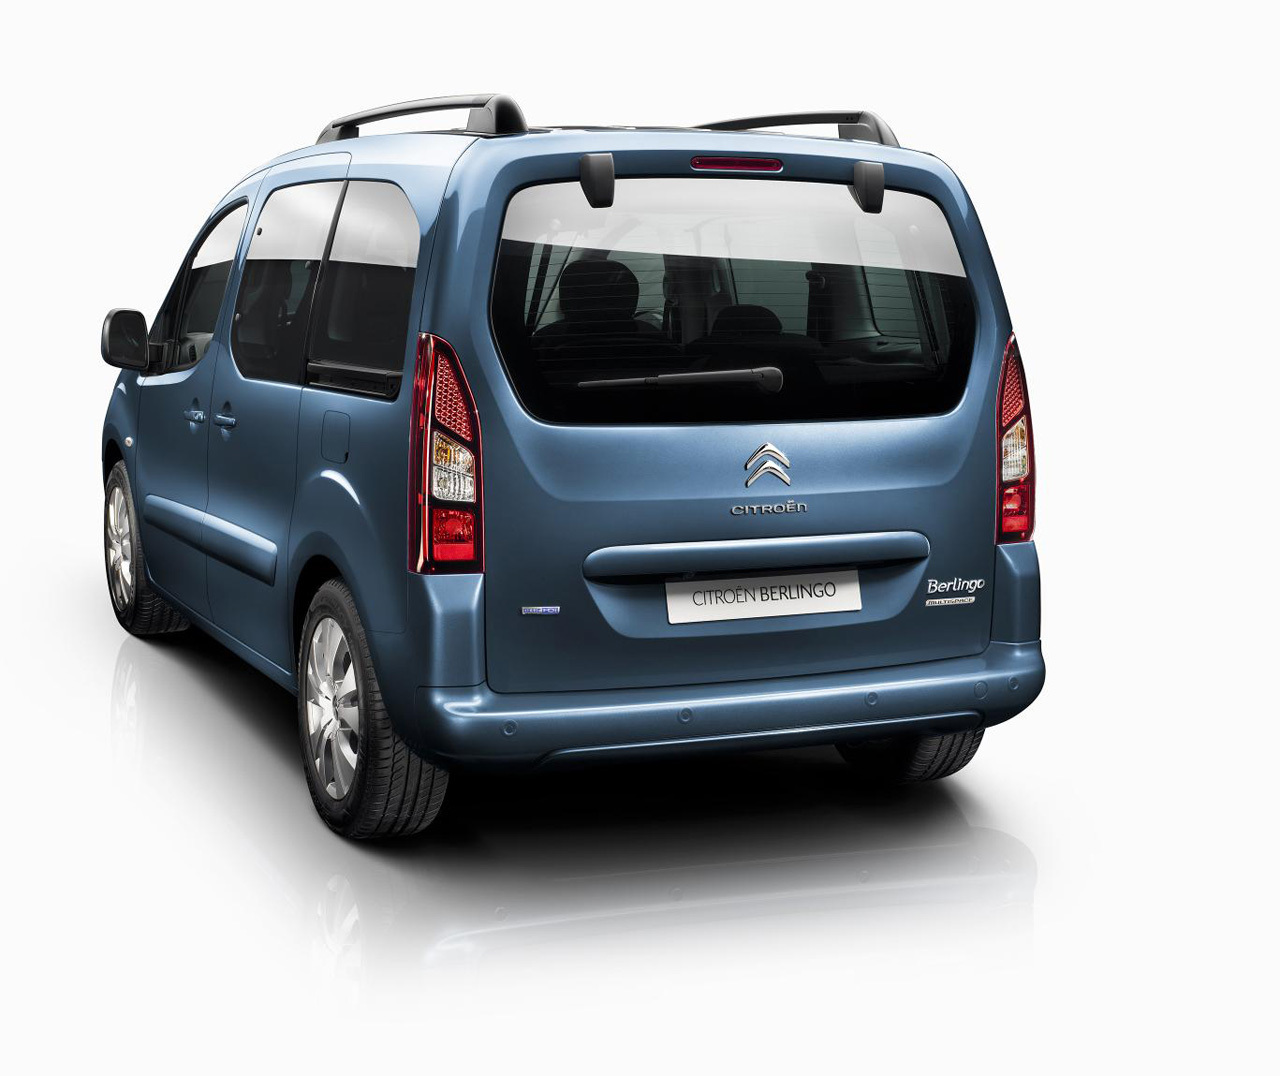 Foto de Citroën Berlingo 2015 (1/9)